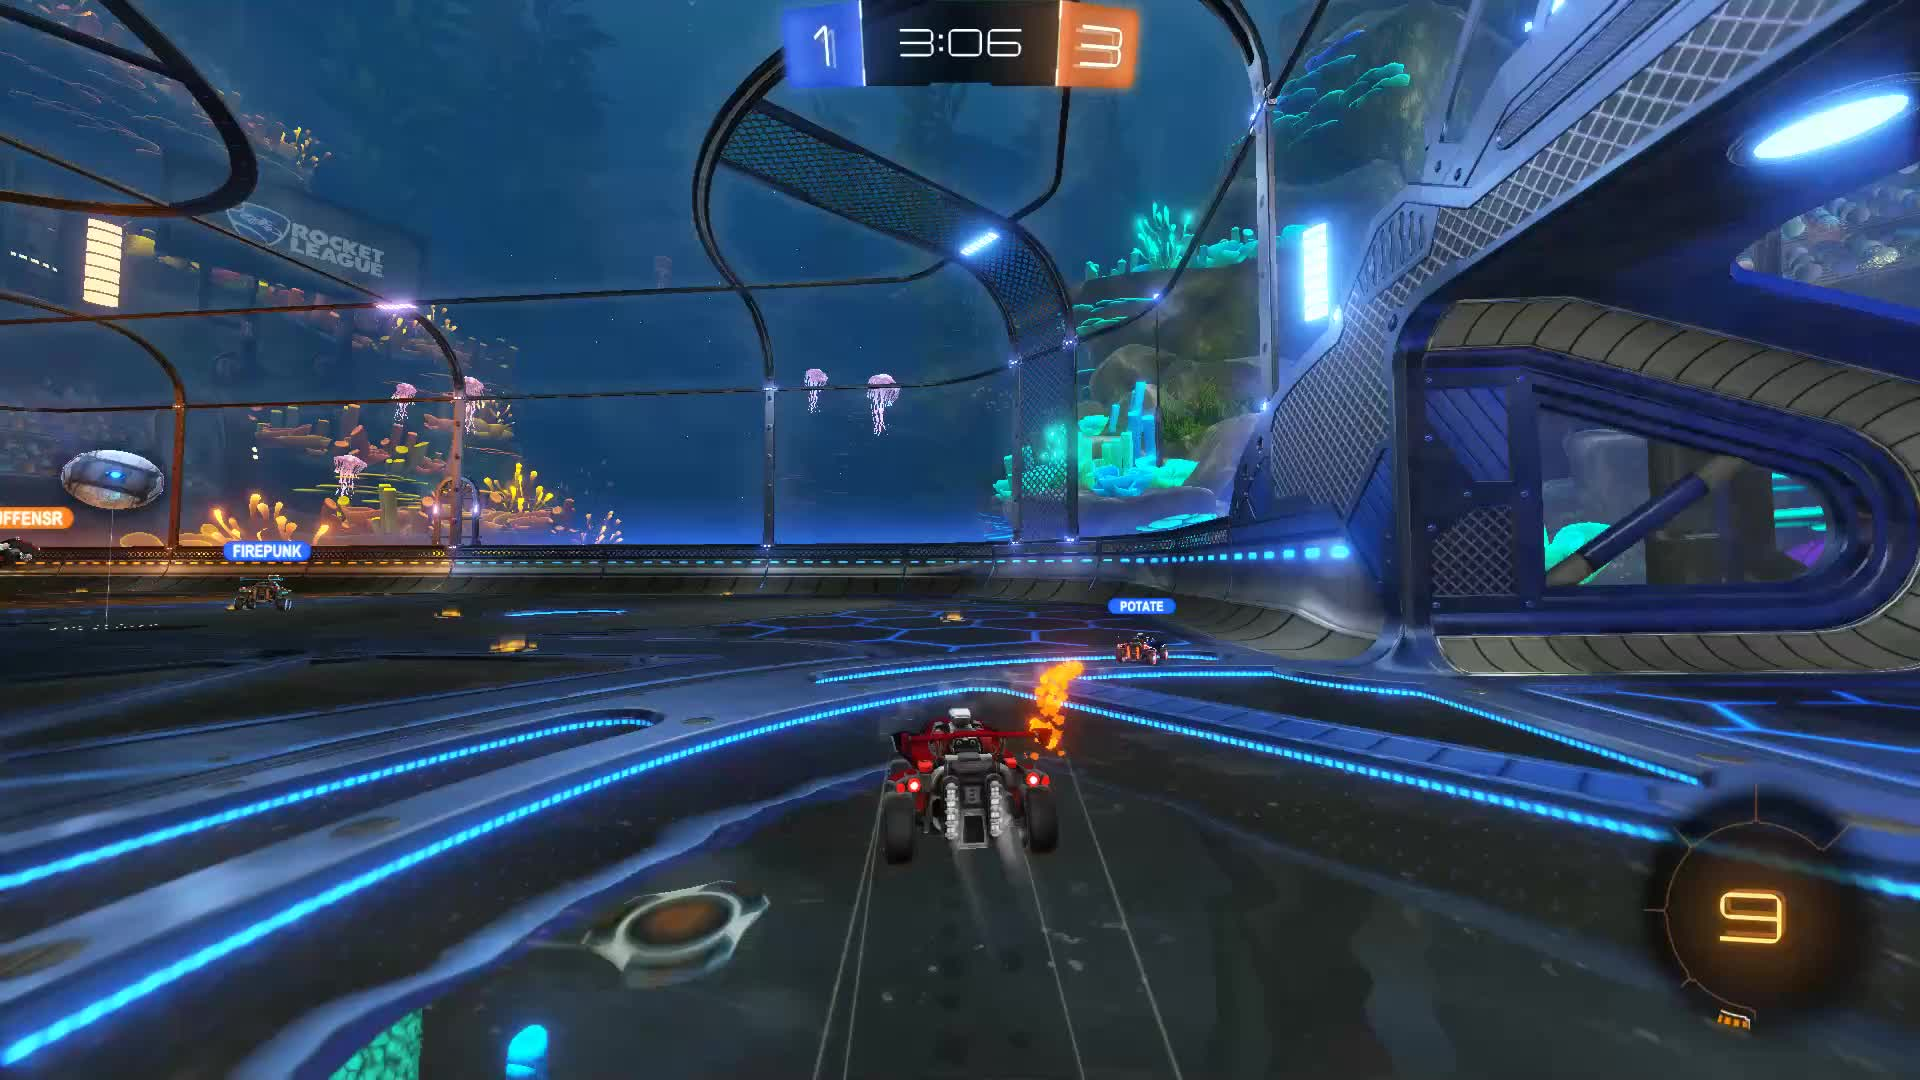 Gif Your Game, GifYourGame, Goal, Rocket League, RocketLeague, iLLixer, Goal 5: iLLixer GIFs